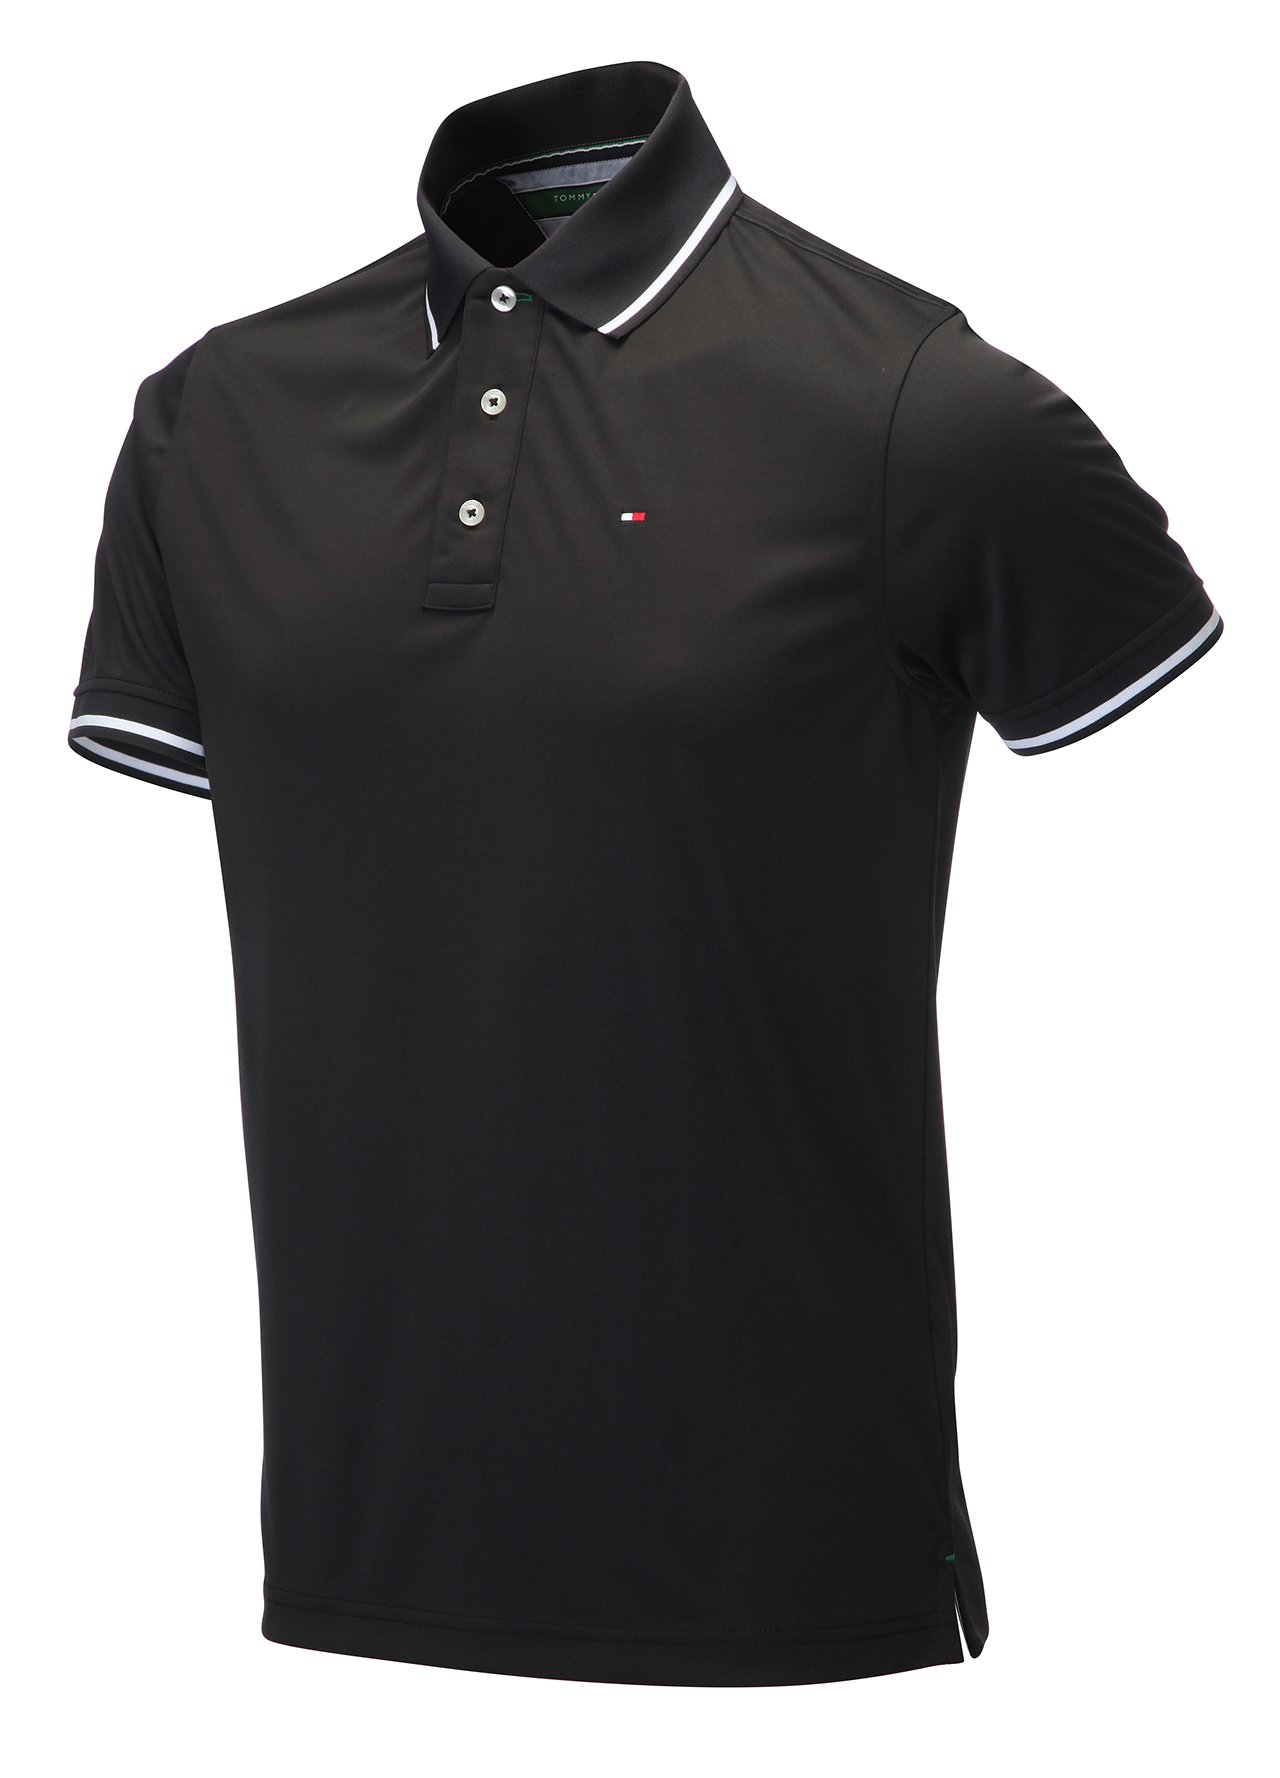 golf clothing shirts black tommy hilfiger golf th tech polo shirt c730 from county golf. Black Bedroom Furniture Sets. Home Design Ideas